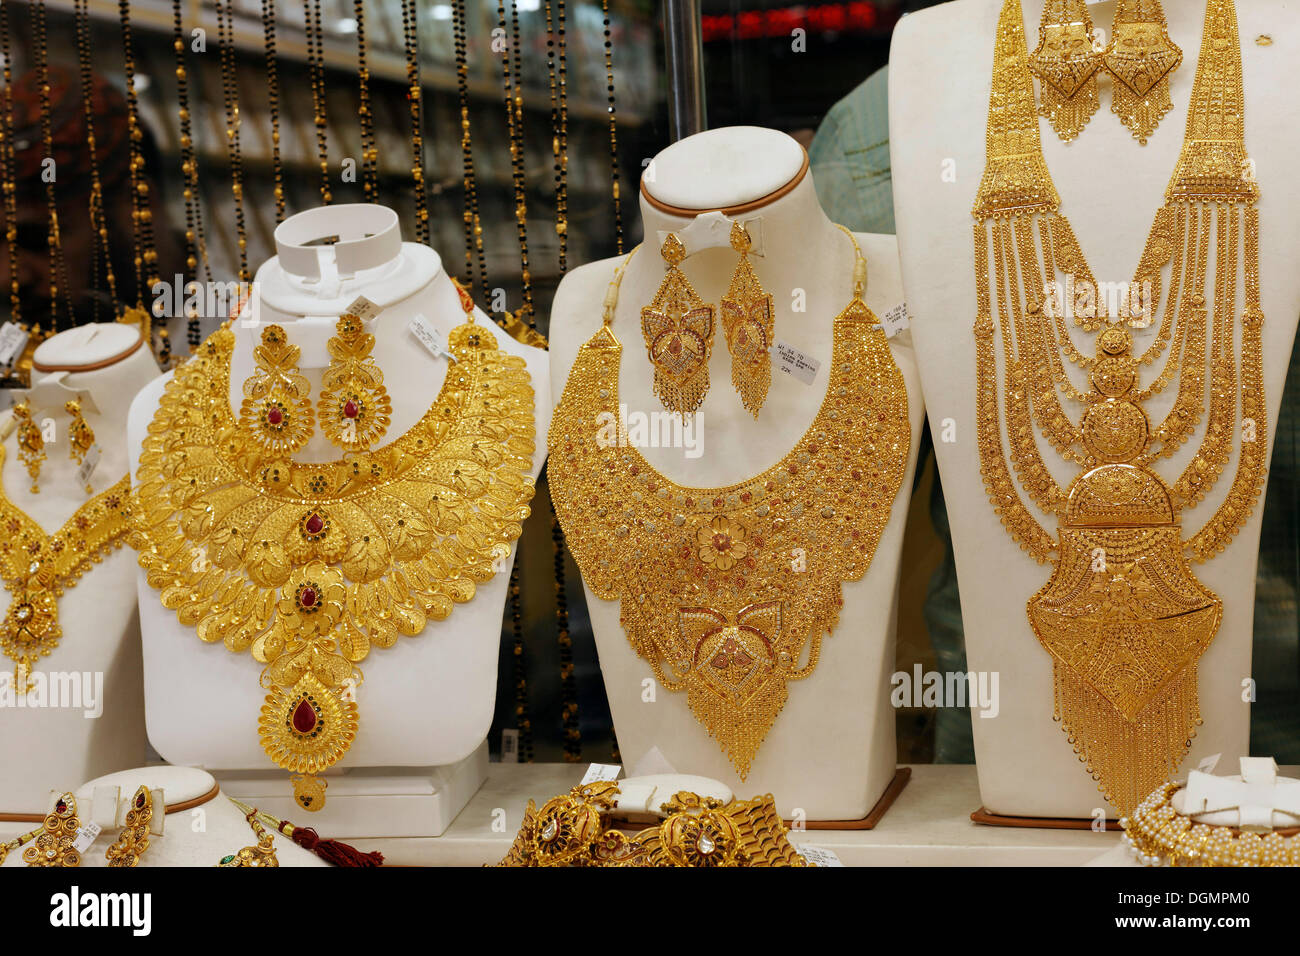 lush gold necklaces indian style based upon ancient